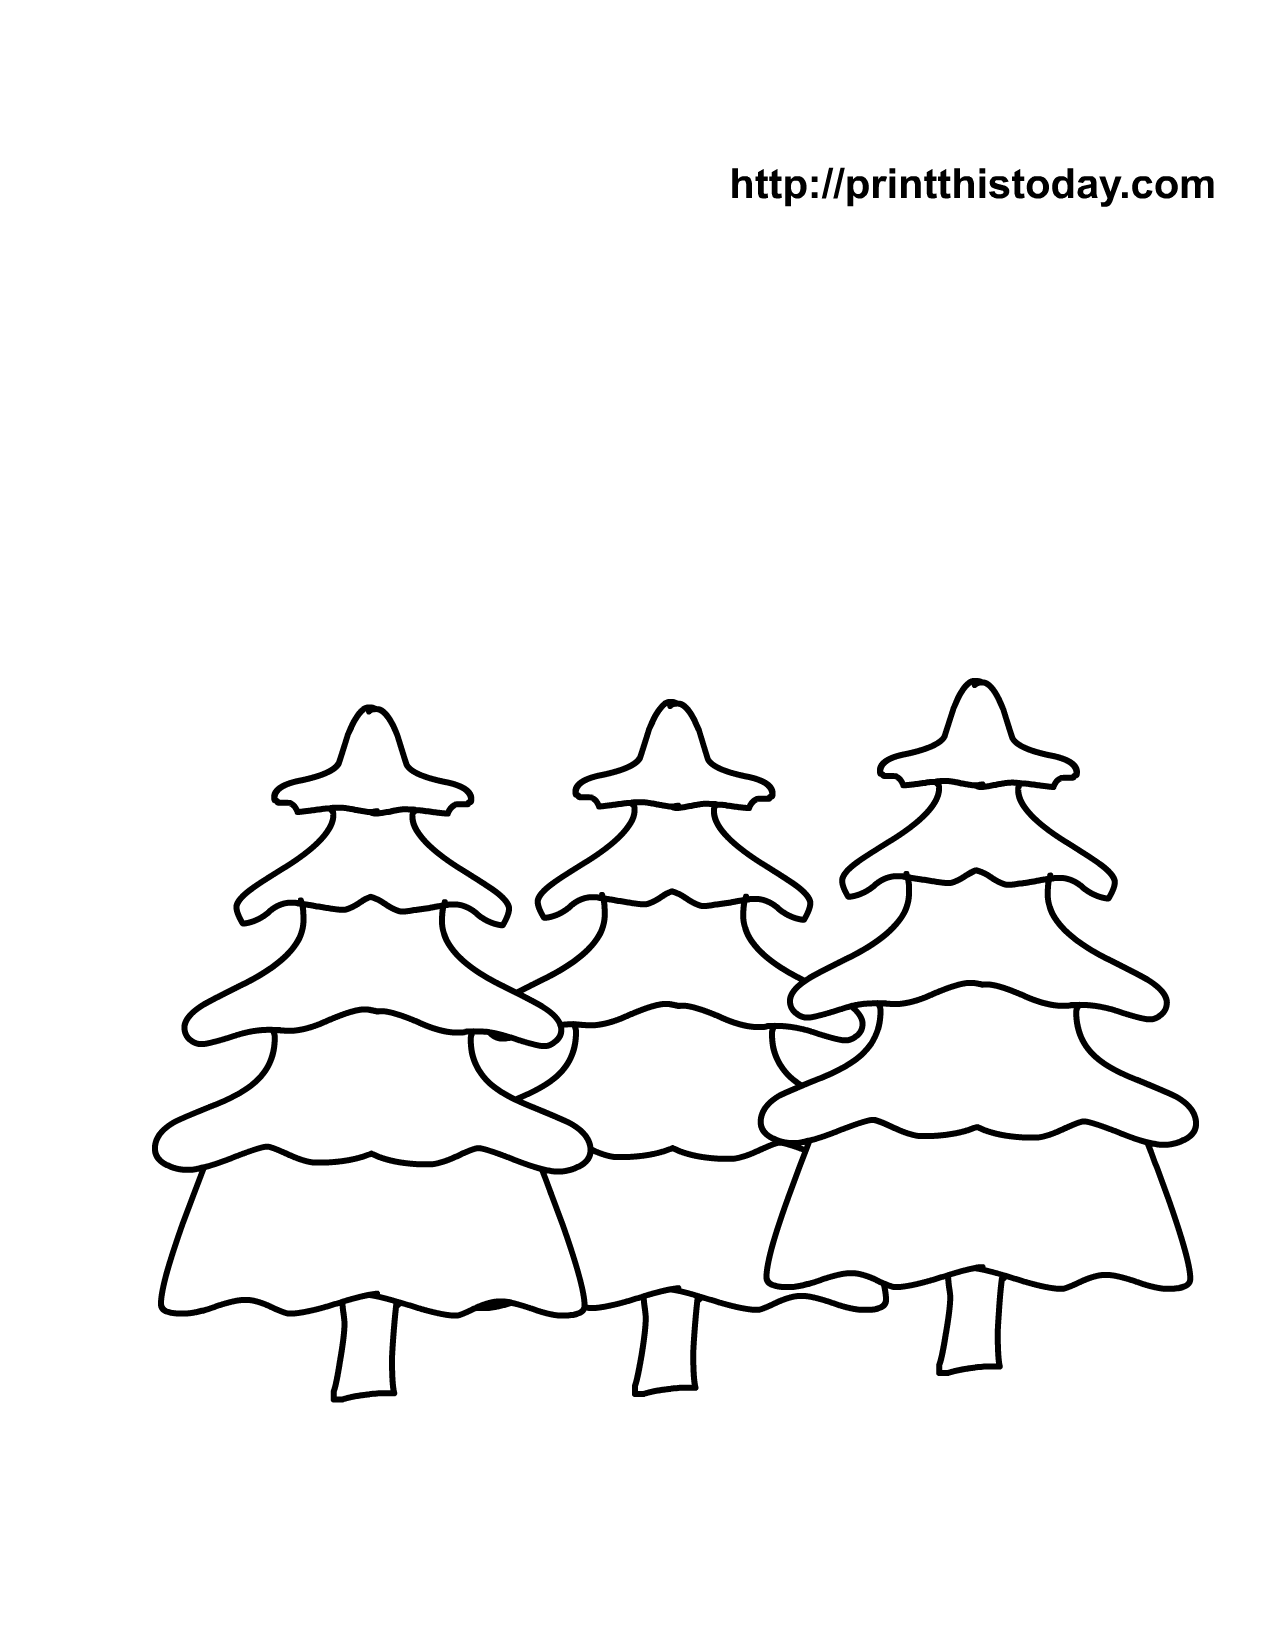 Coloring pages christmas tree blank christmas tree coloring pages - Free Printable Christmas Trees